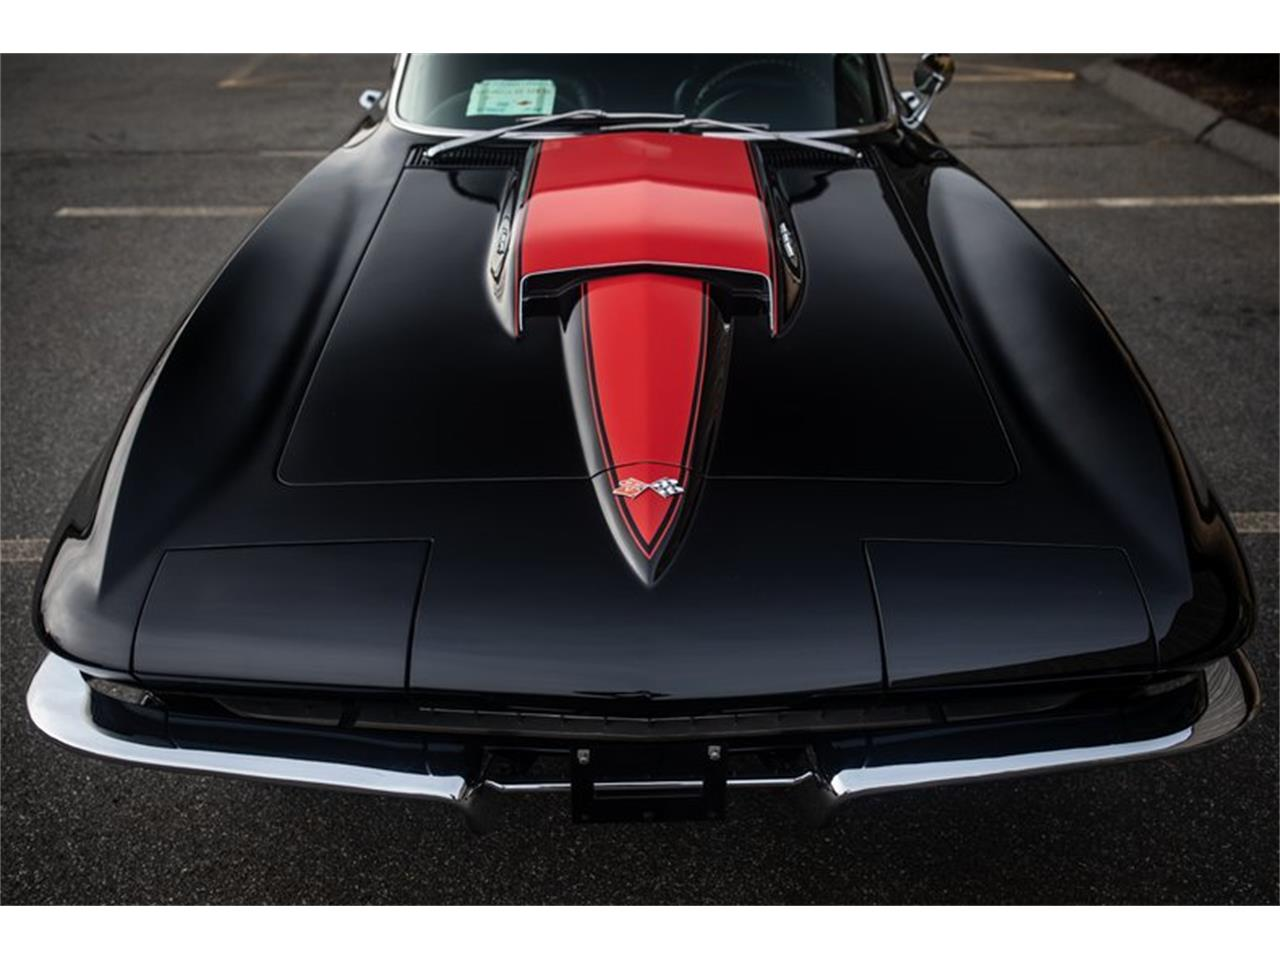 1967 Chevrolet Corvette (CC-1176326) for sale in Wallingford, Connecticut